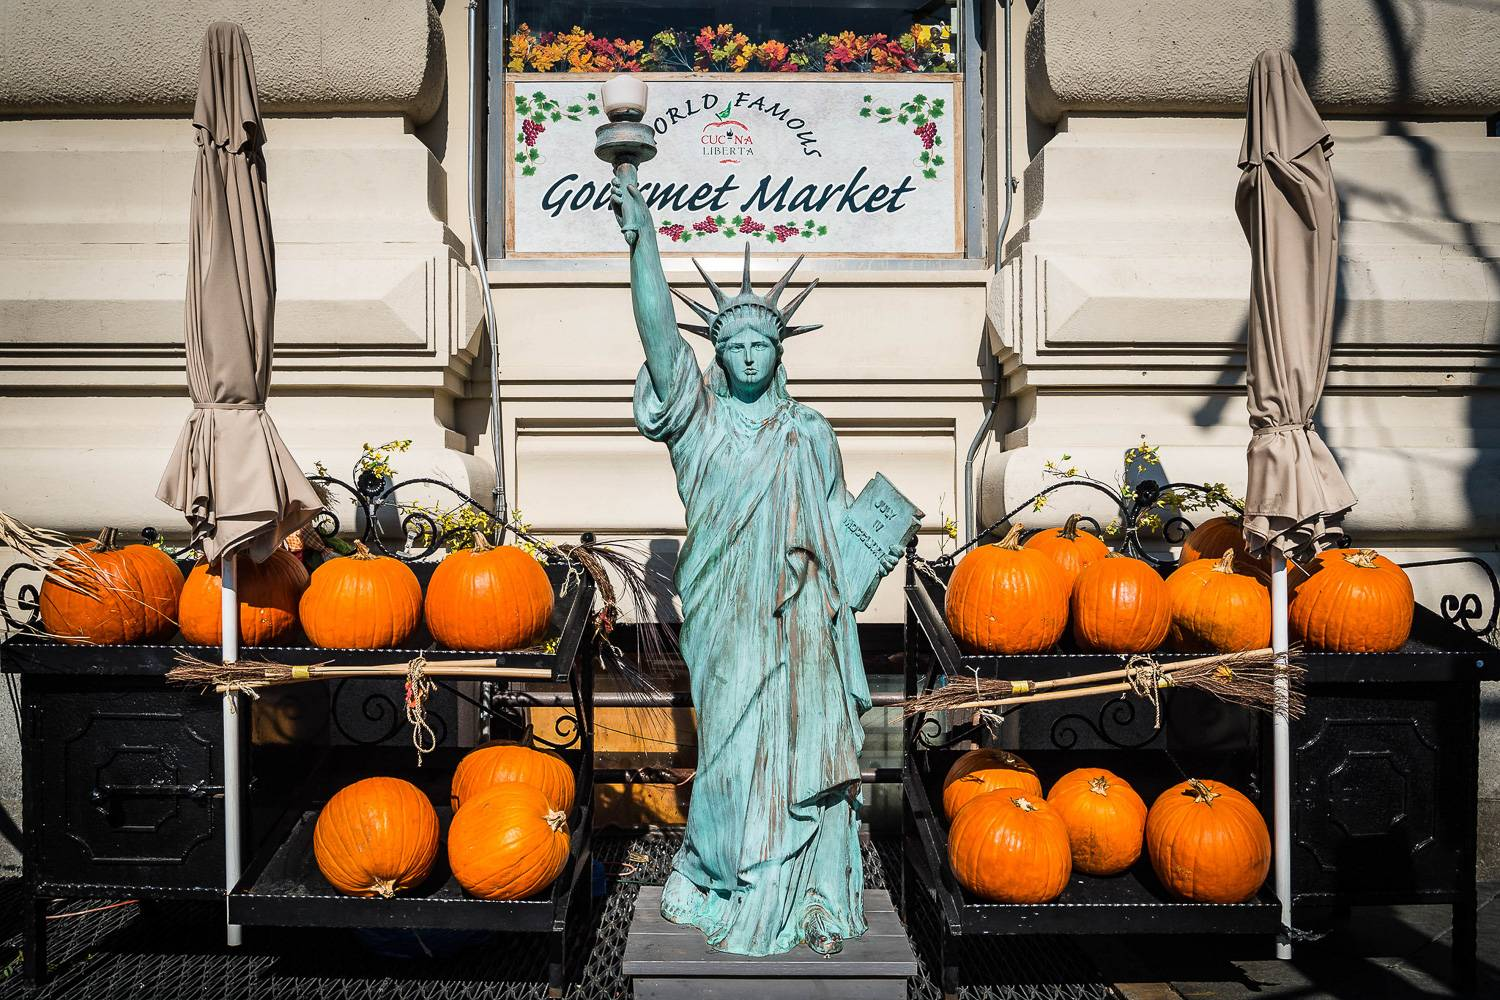 Image of a miniature Statue of Liberty surrounded by pumpkins.